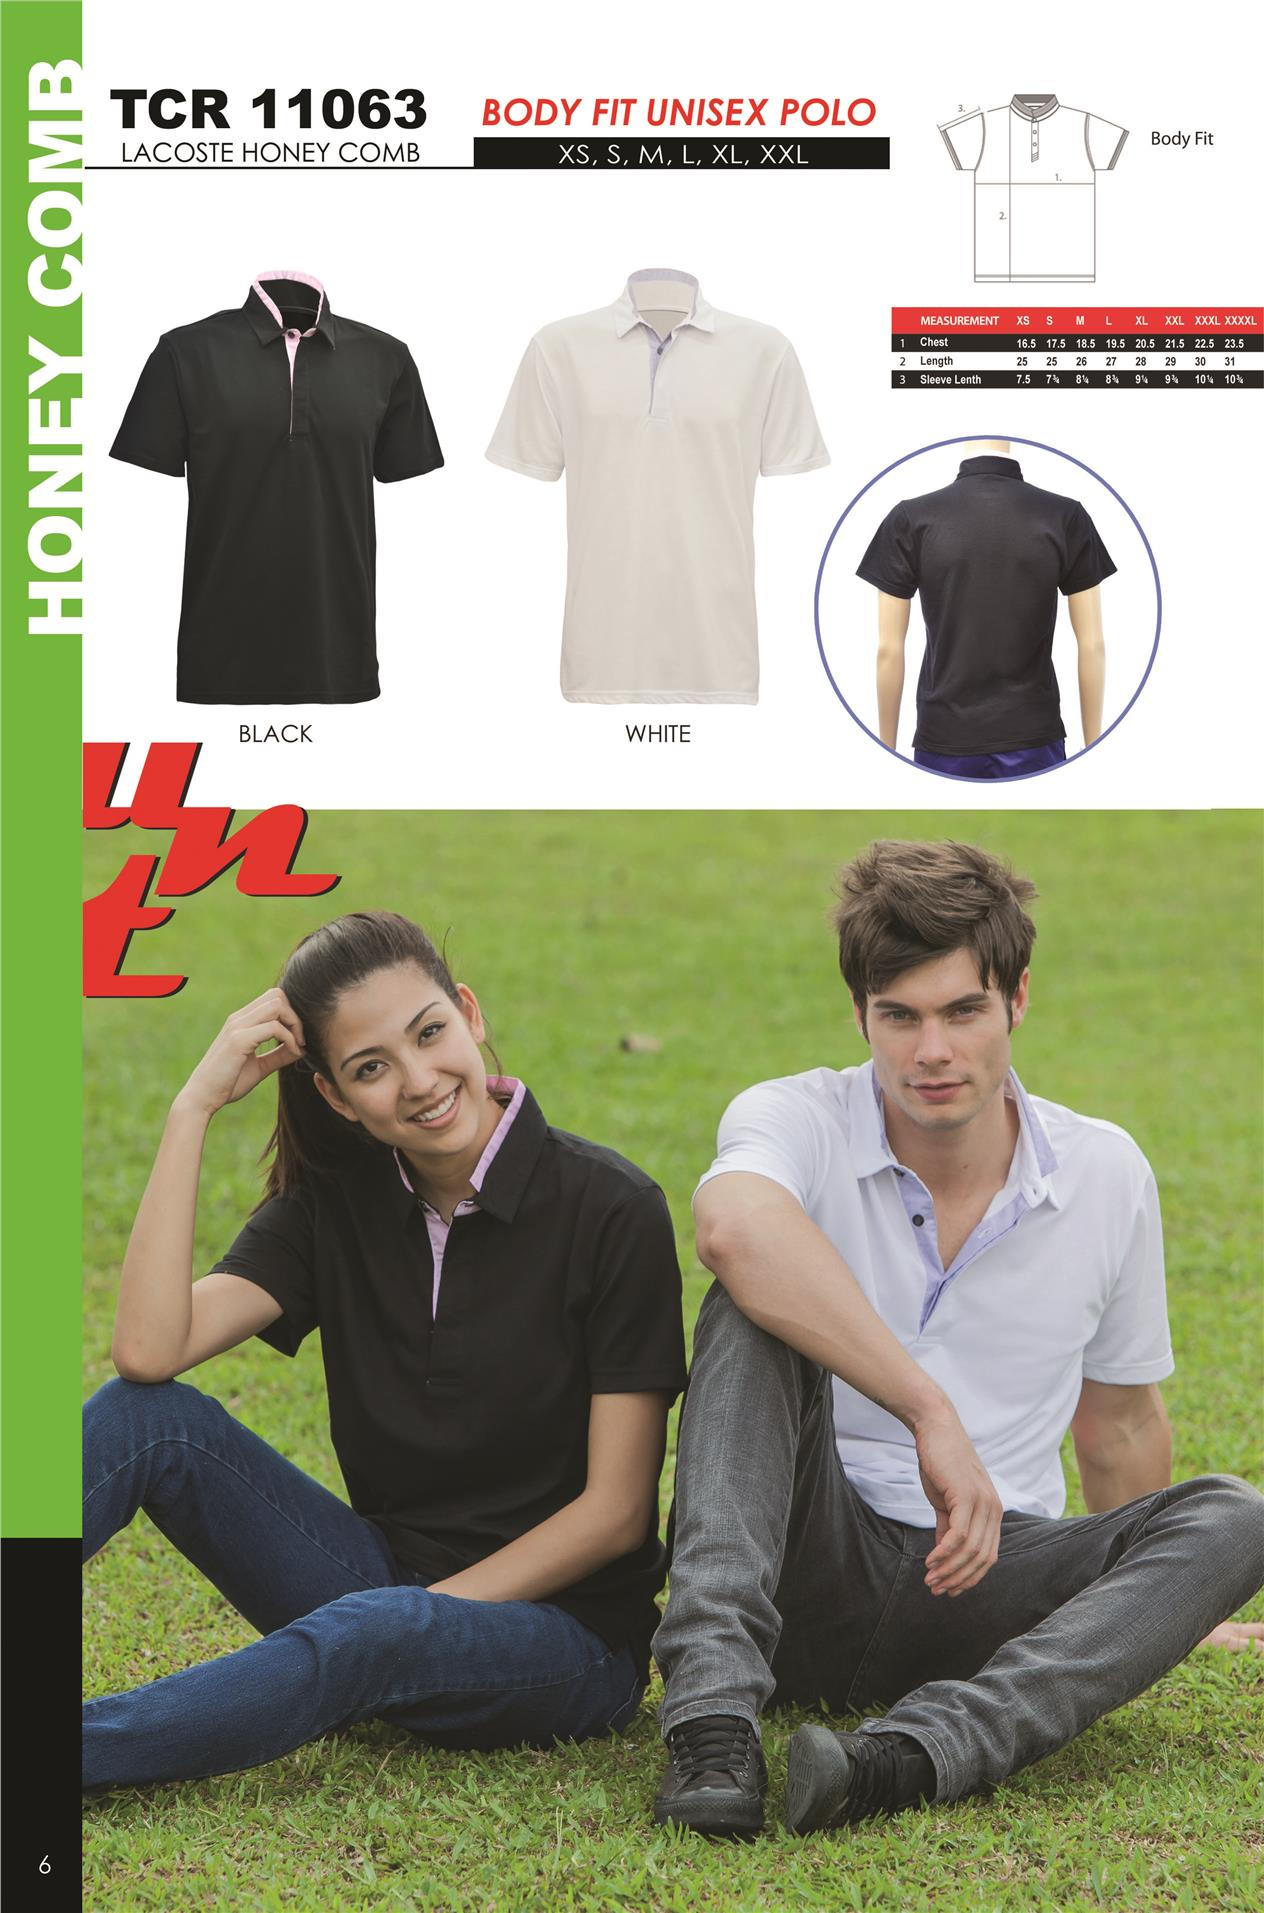 UNT UNIFORM HONEY COMB BODY FIT POLO SHIRT